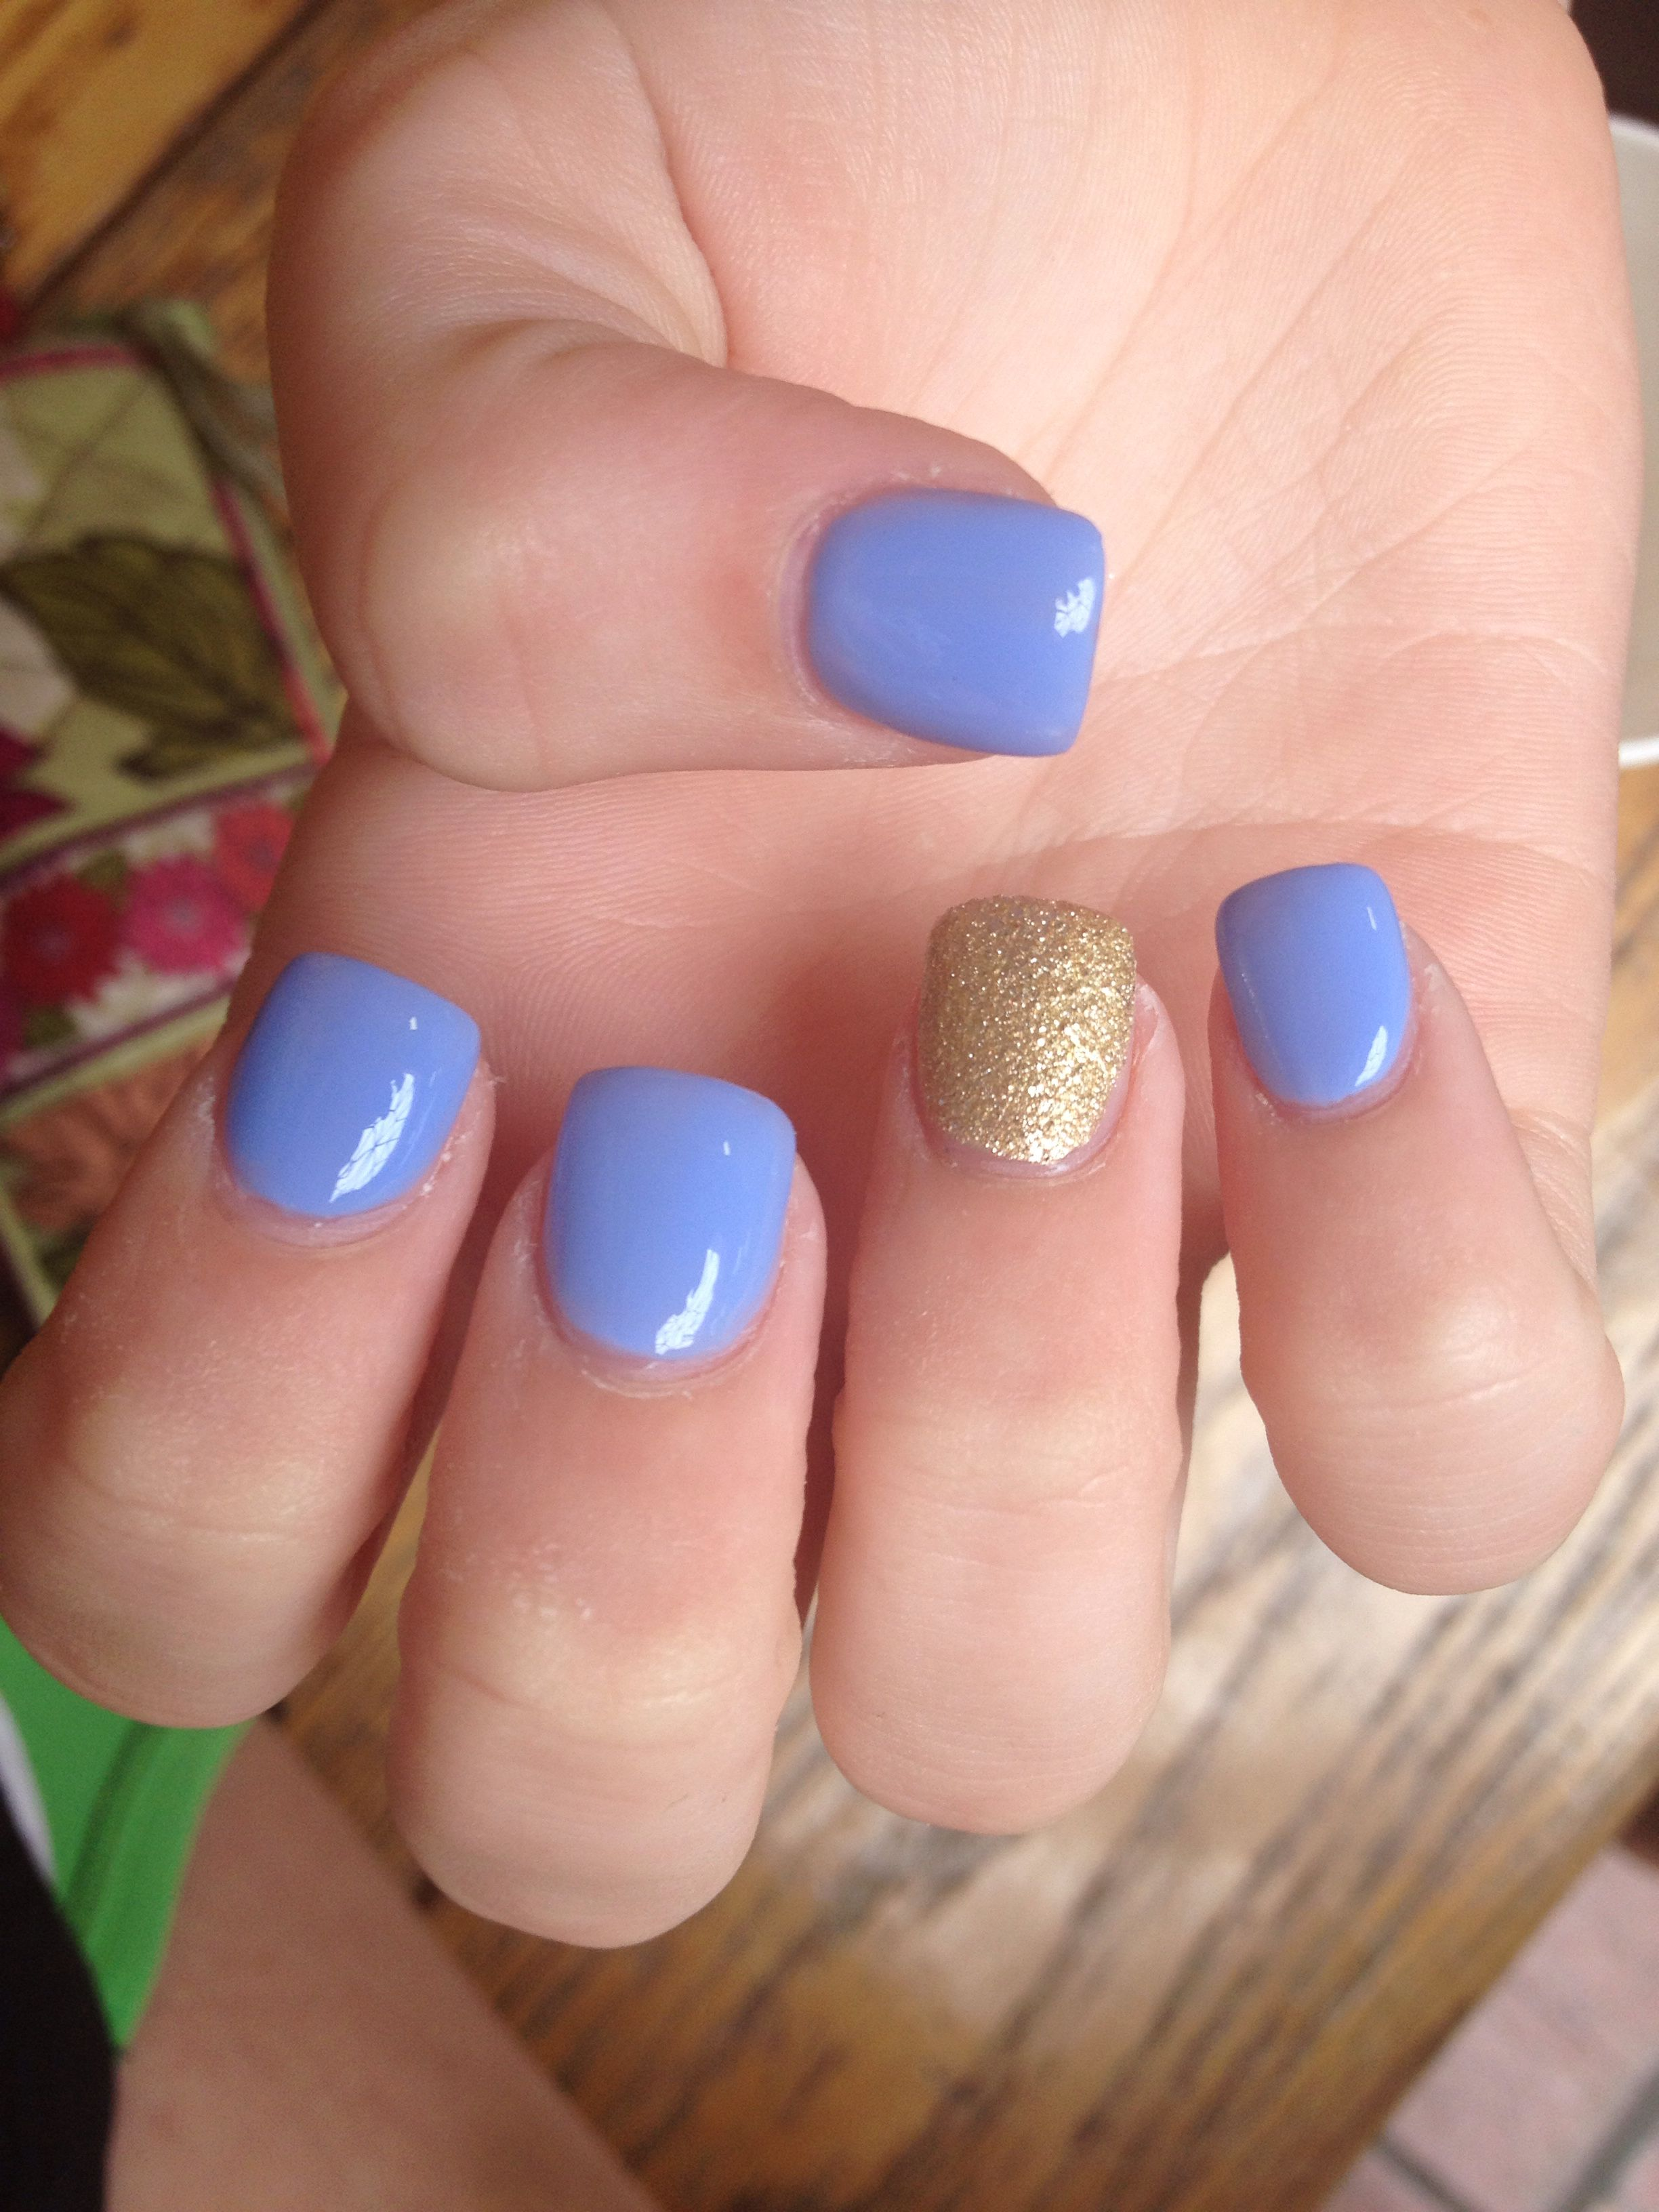 Periwinkle And Gold Short Acrylics Remove Acrylic Nails Short Acrylic Nails Short Acrylic Nails Designs